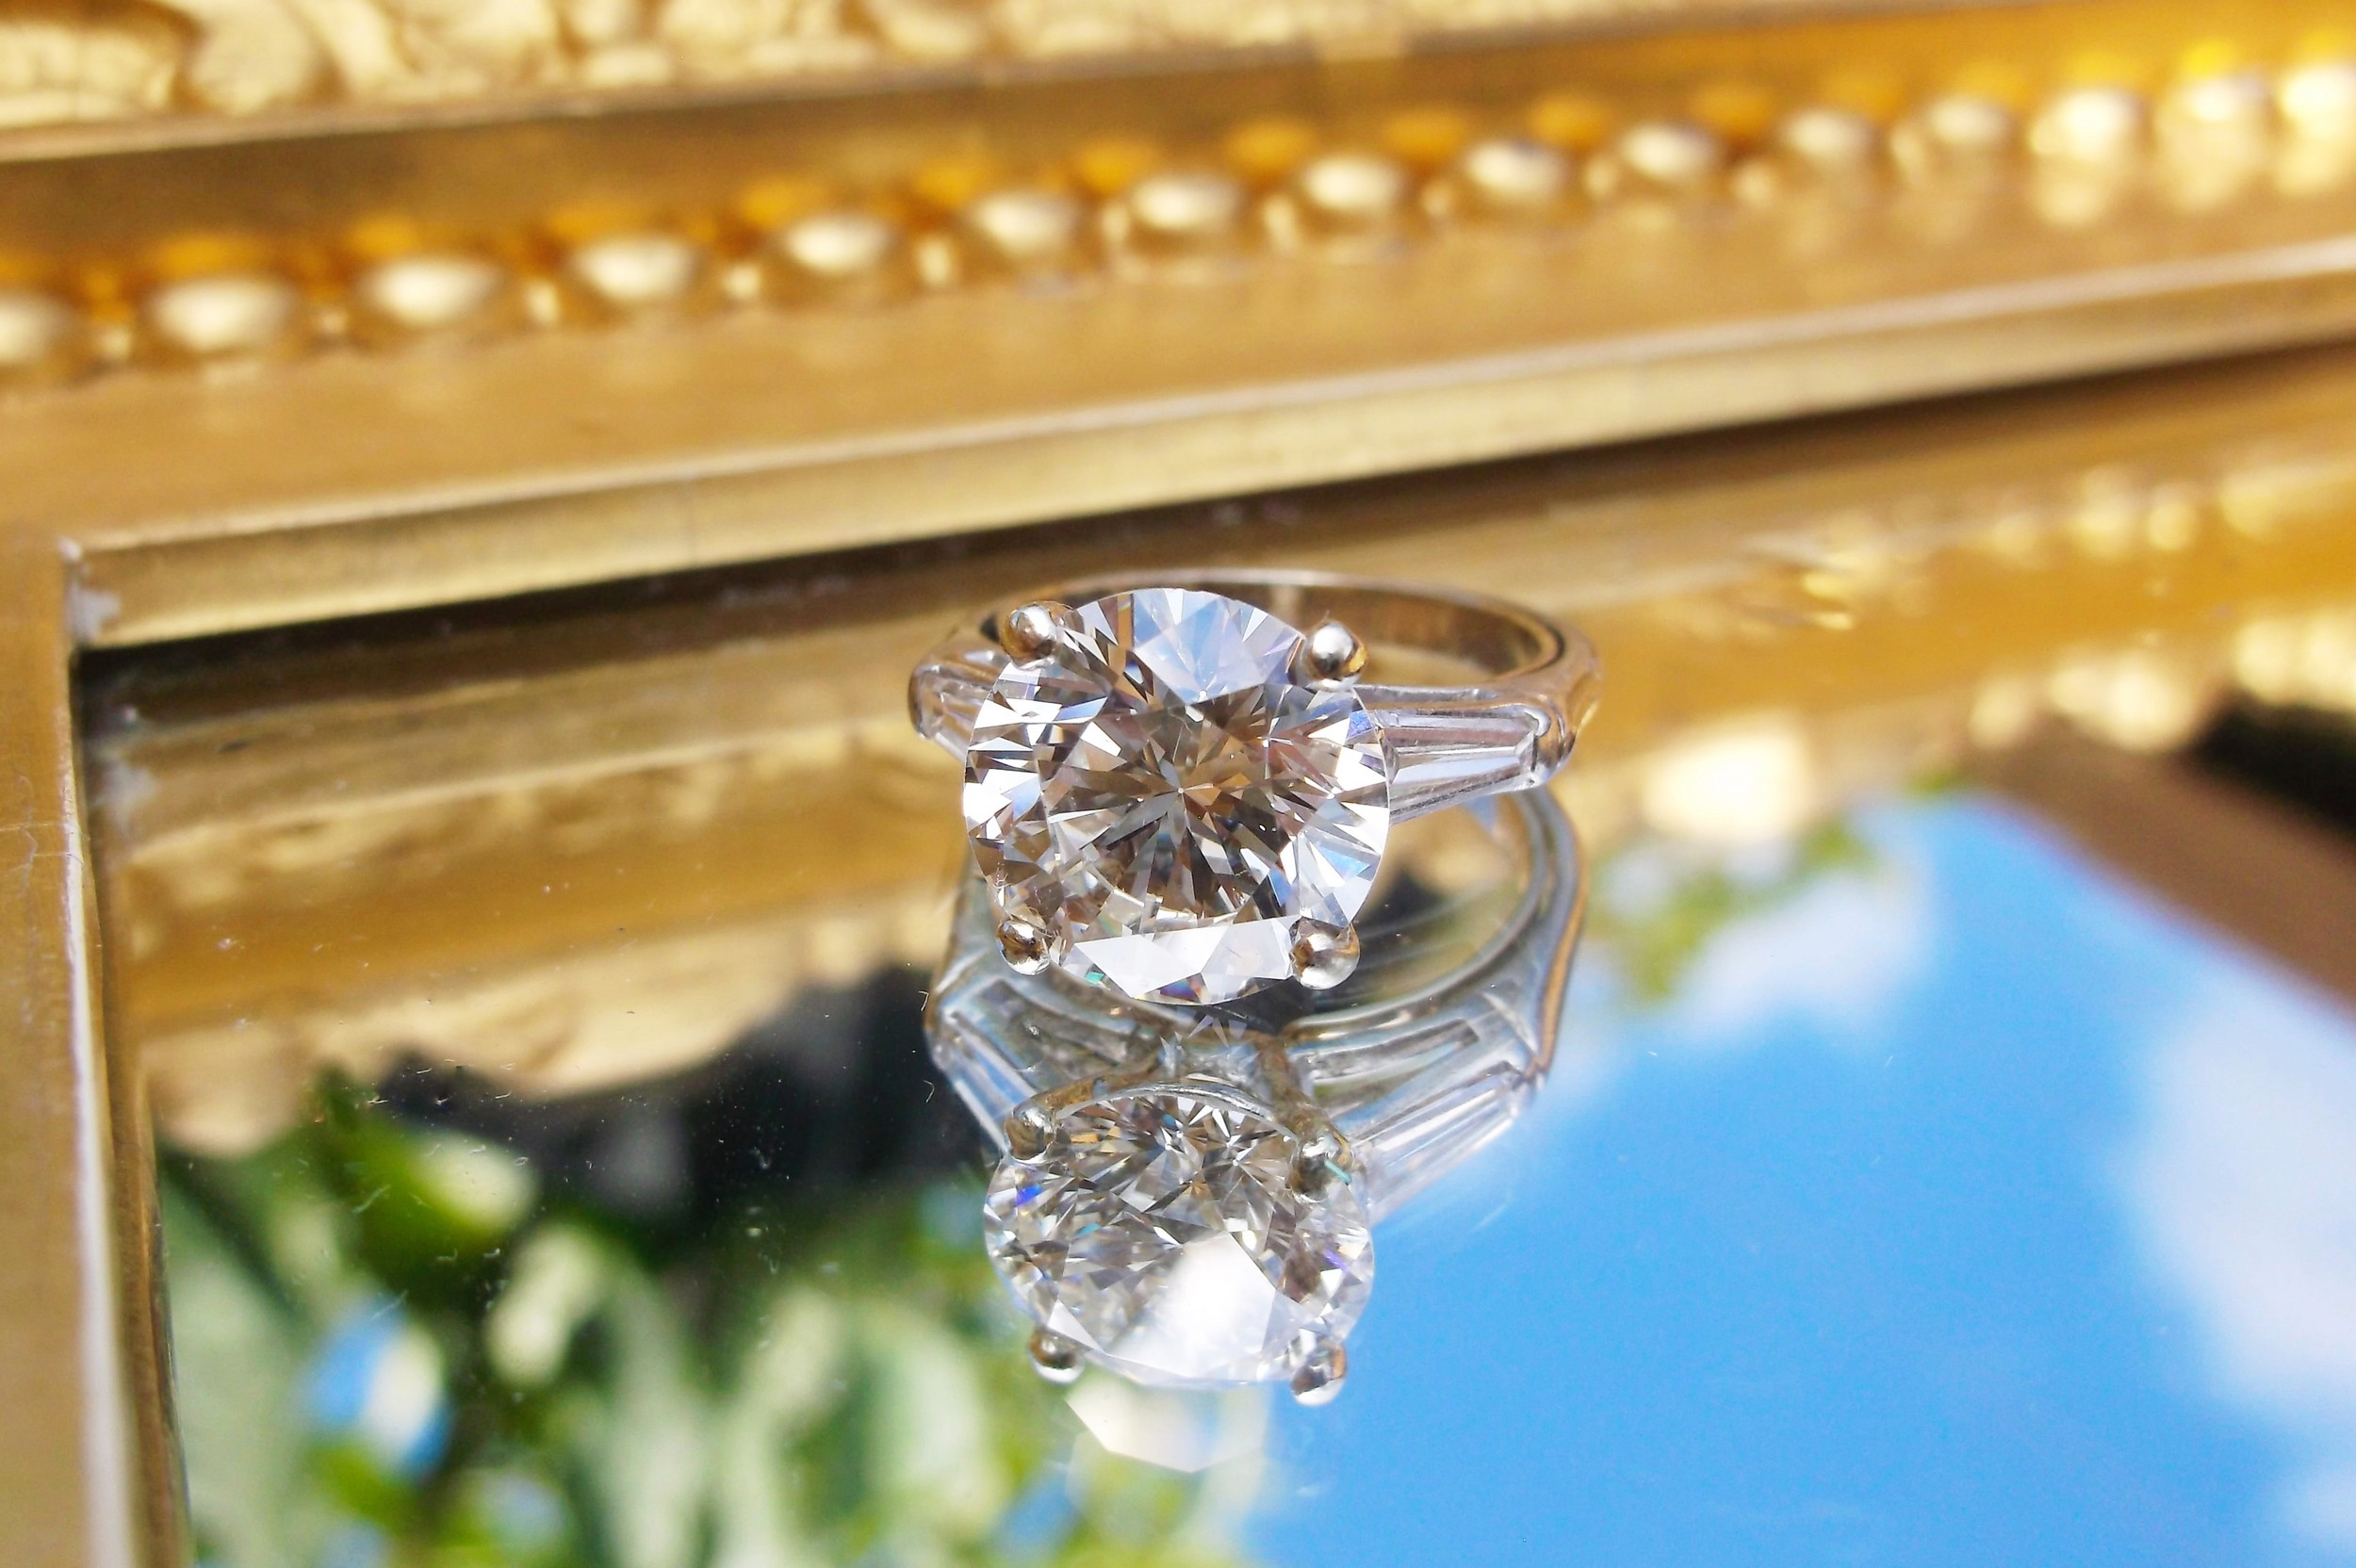 SOLD - So gorgeous, we're seeing double! 4.04 carat round brilliant cut diamond set in a classic baguette cut diamond and platinum setting.